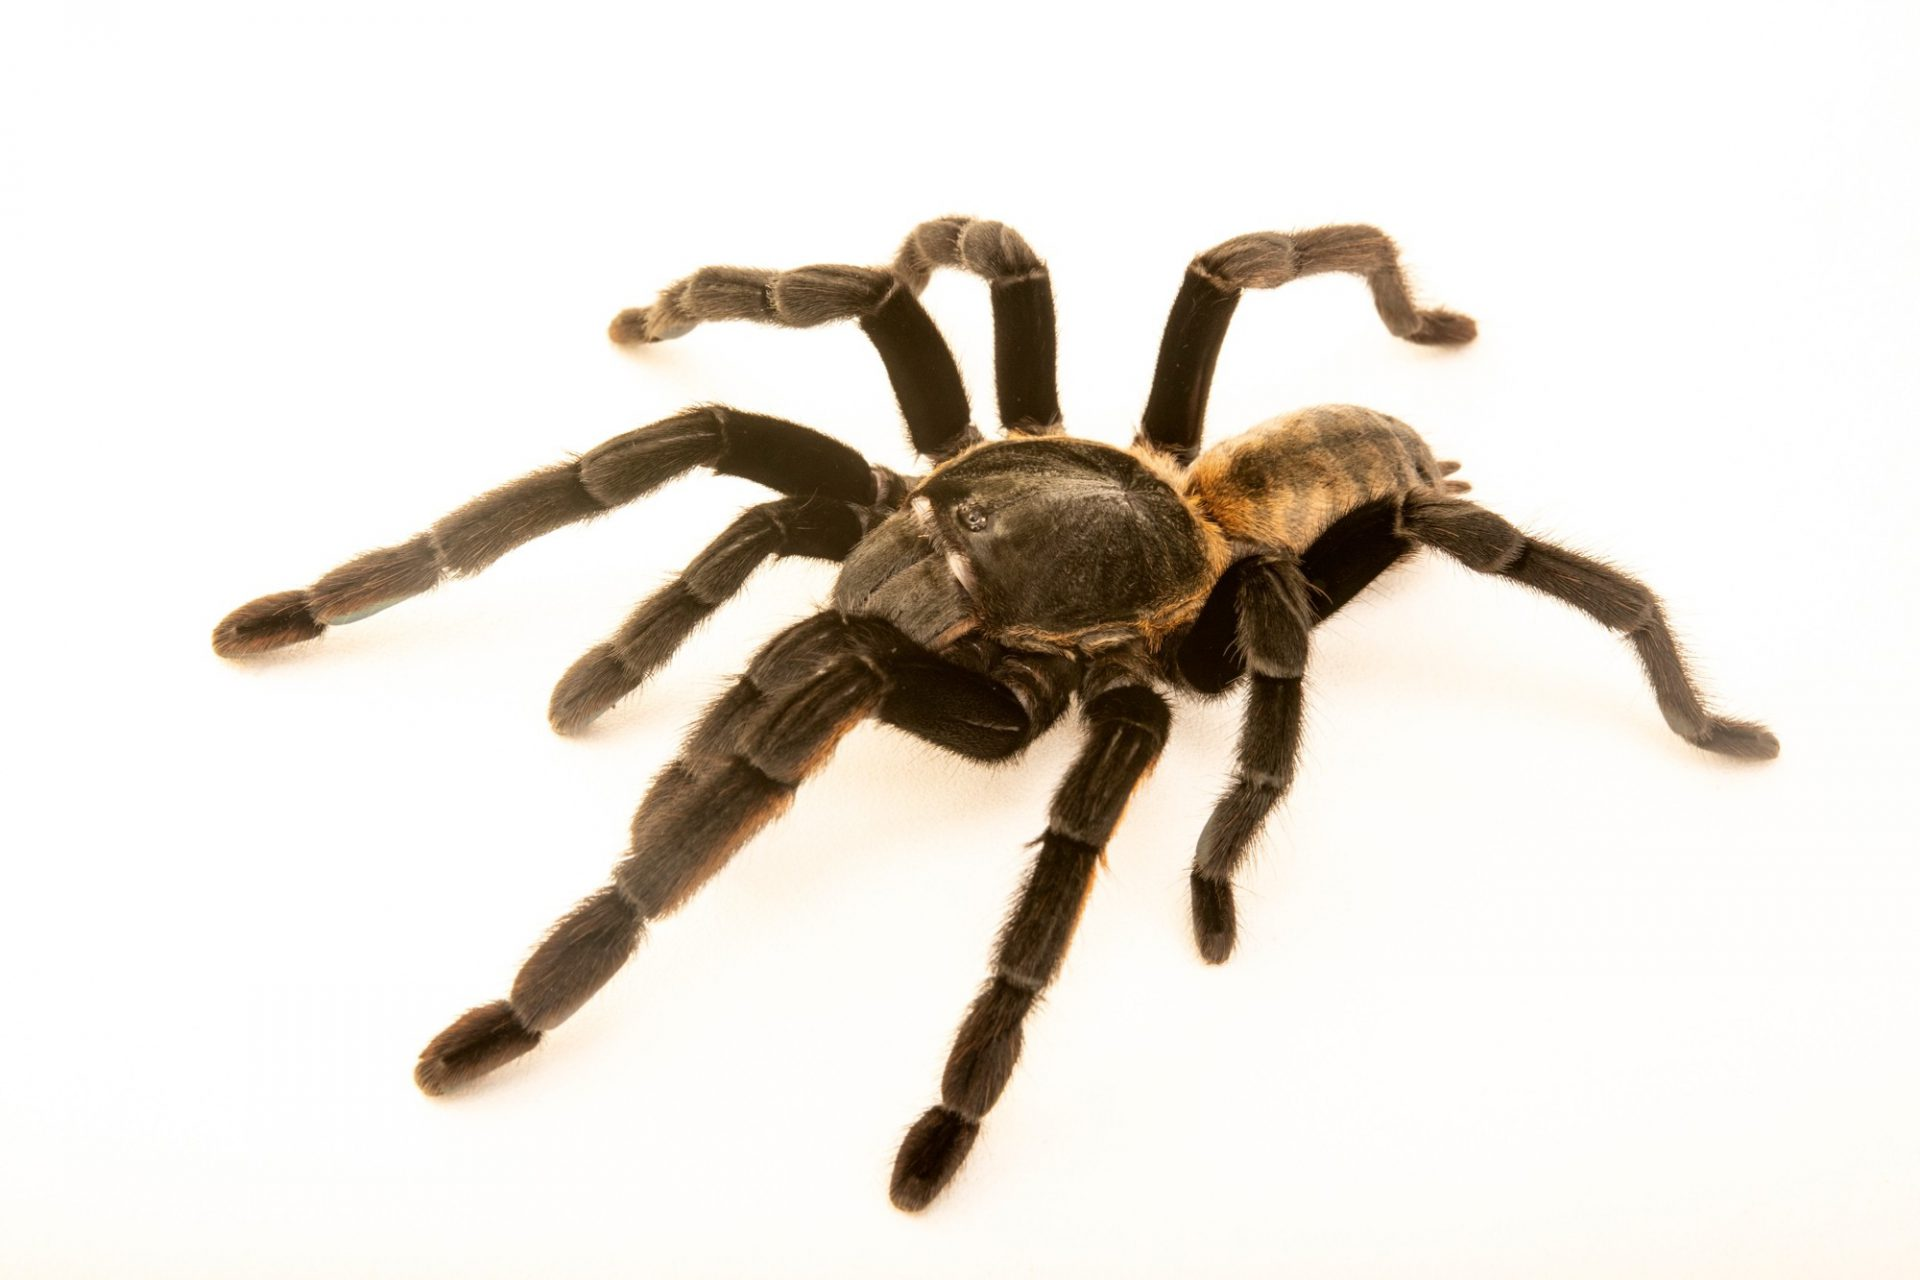 Photo: An unidentified tarantula, Ornithoctonus sp. (undescribed species collected from Surat Thani location) from a private collection.